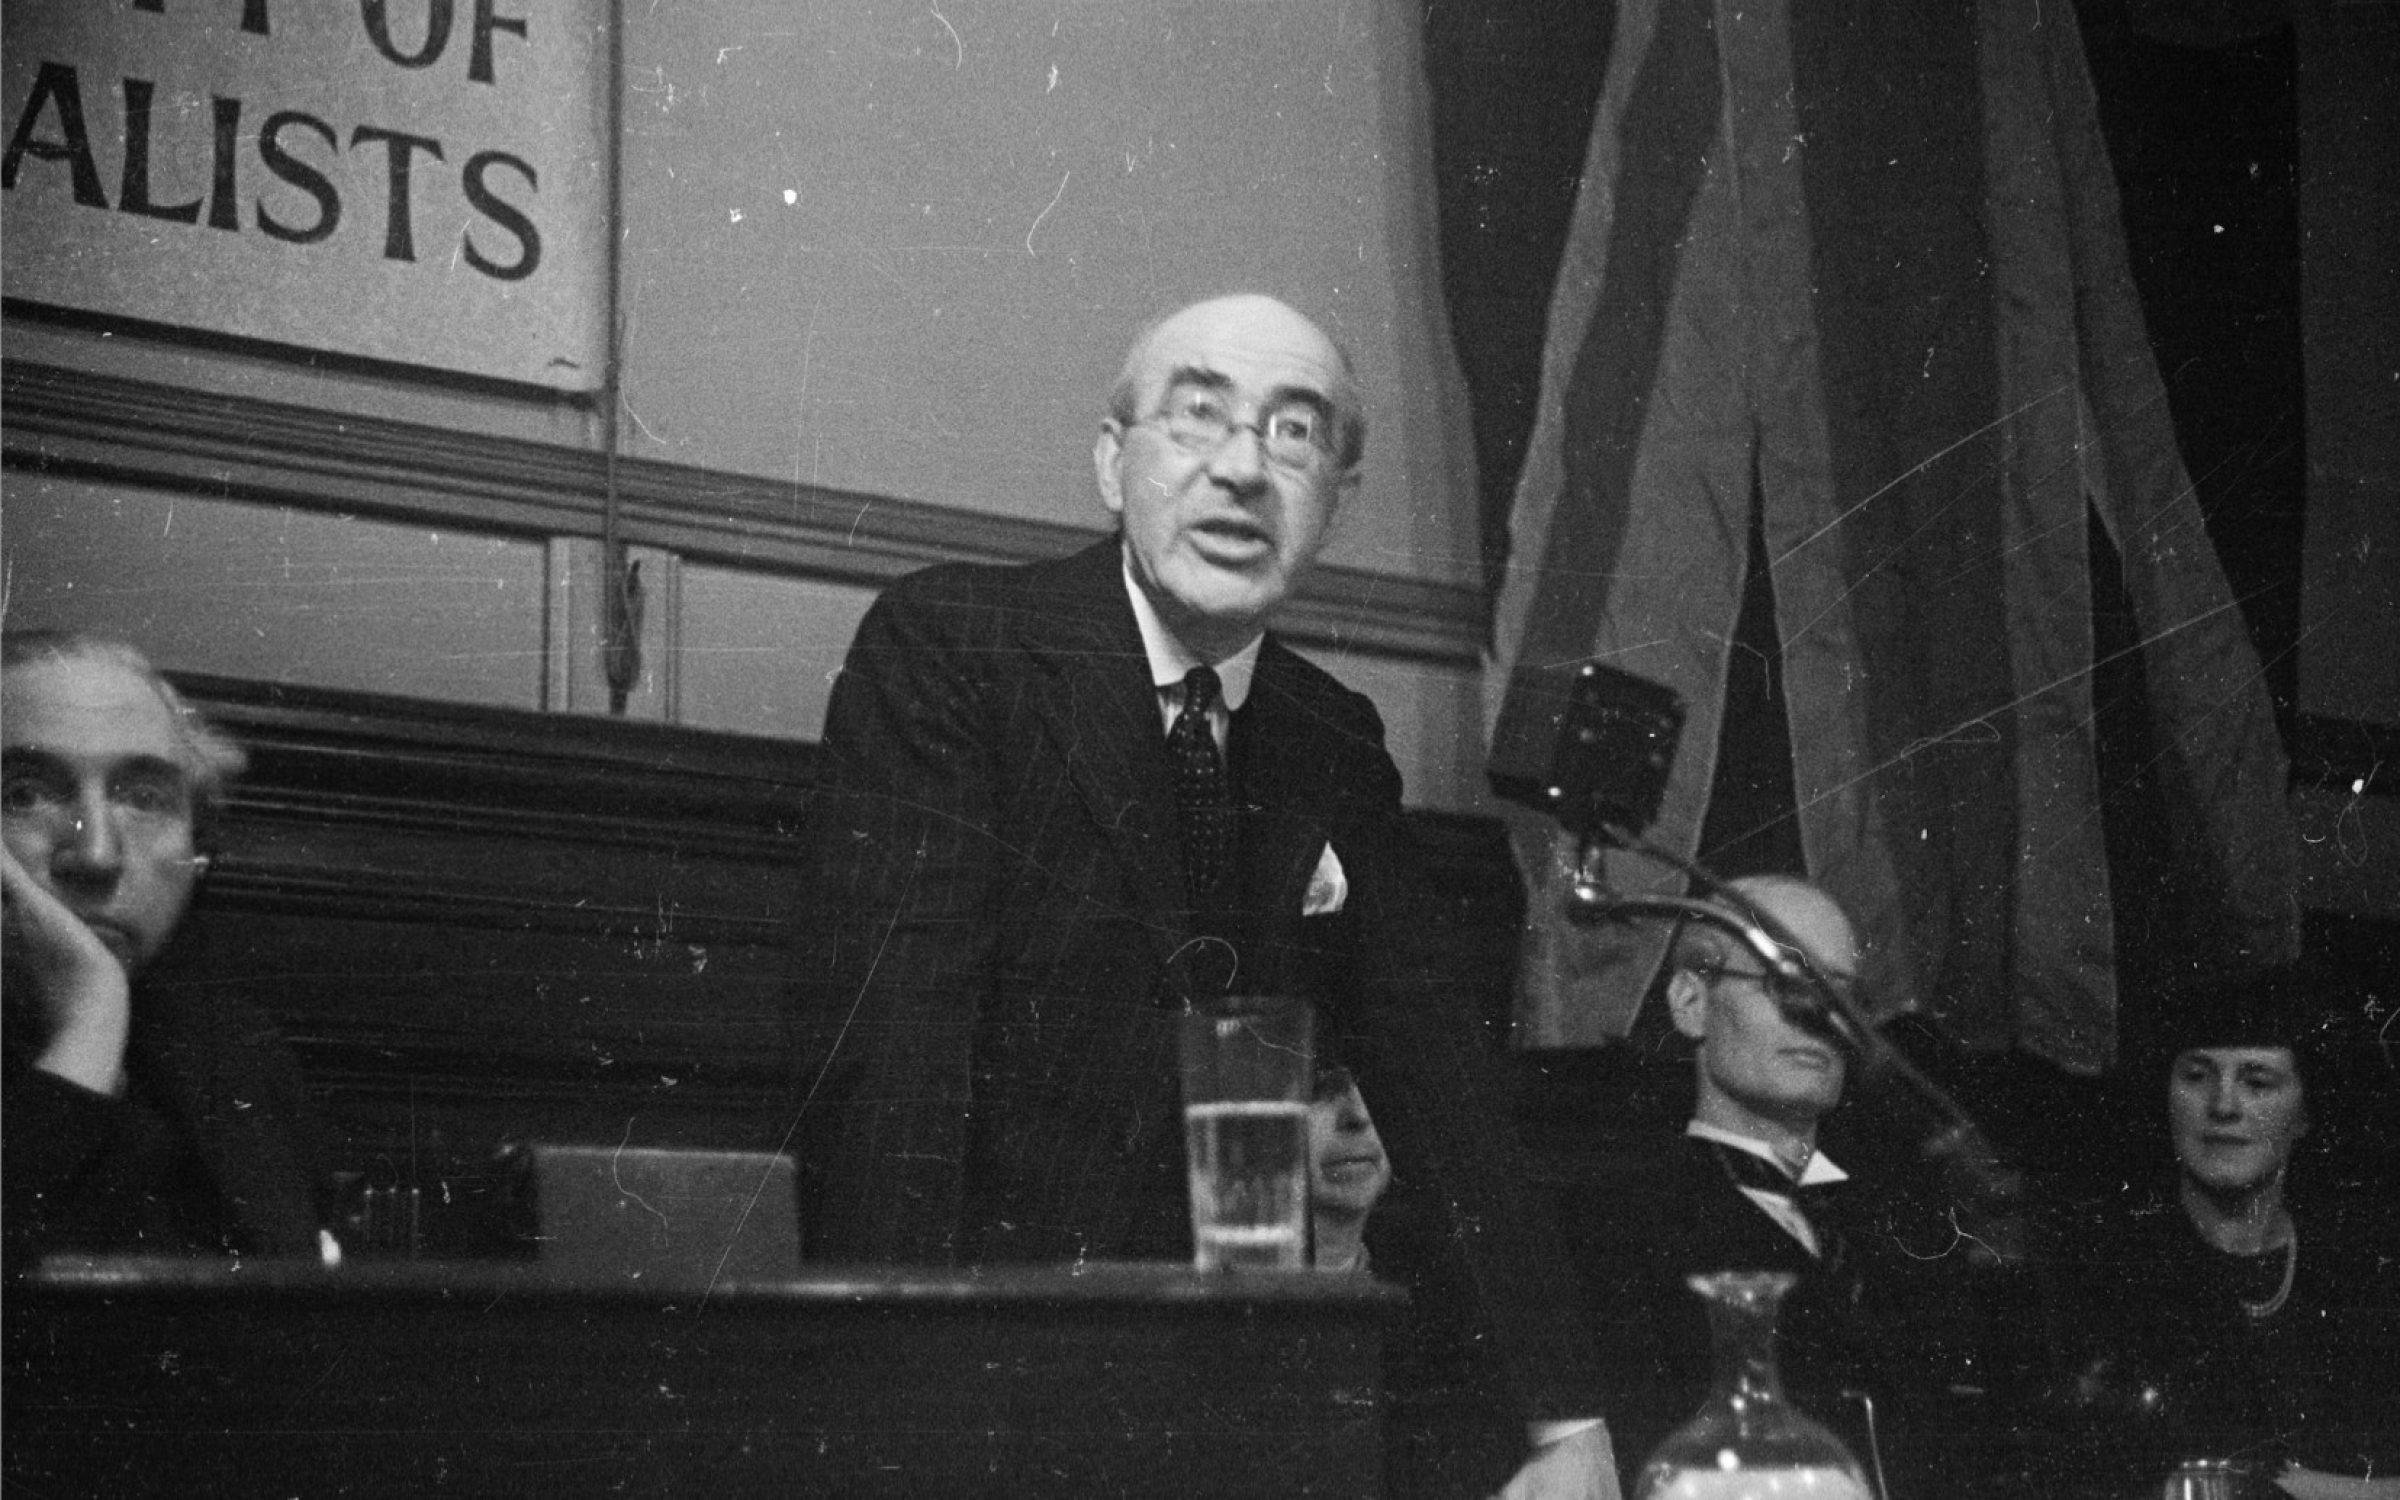 Sir Ernest Benn, speaking here in 1943, as President of the British Society of Individualists. Credit: Kurt Hutton/Picture Post/Hulton Archive/Getty Images.